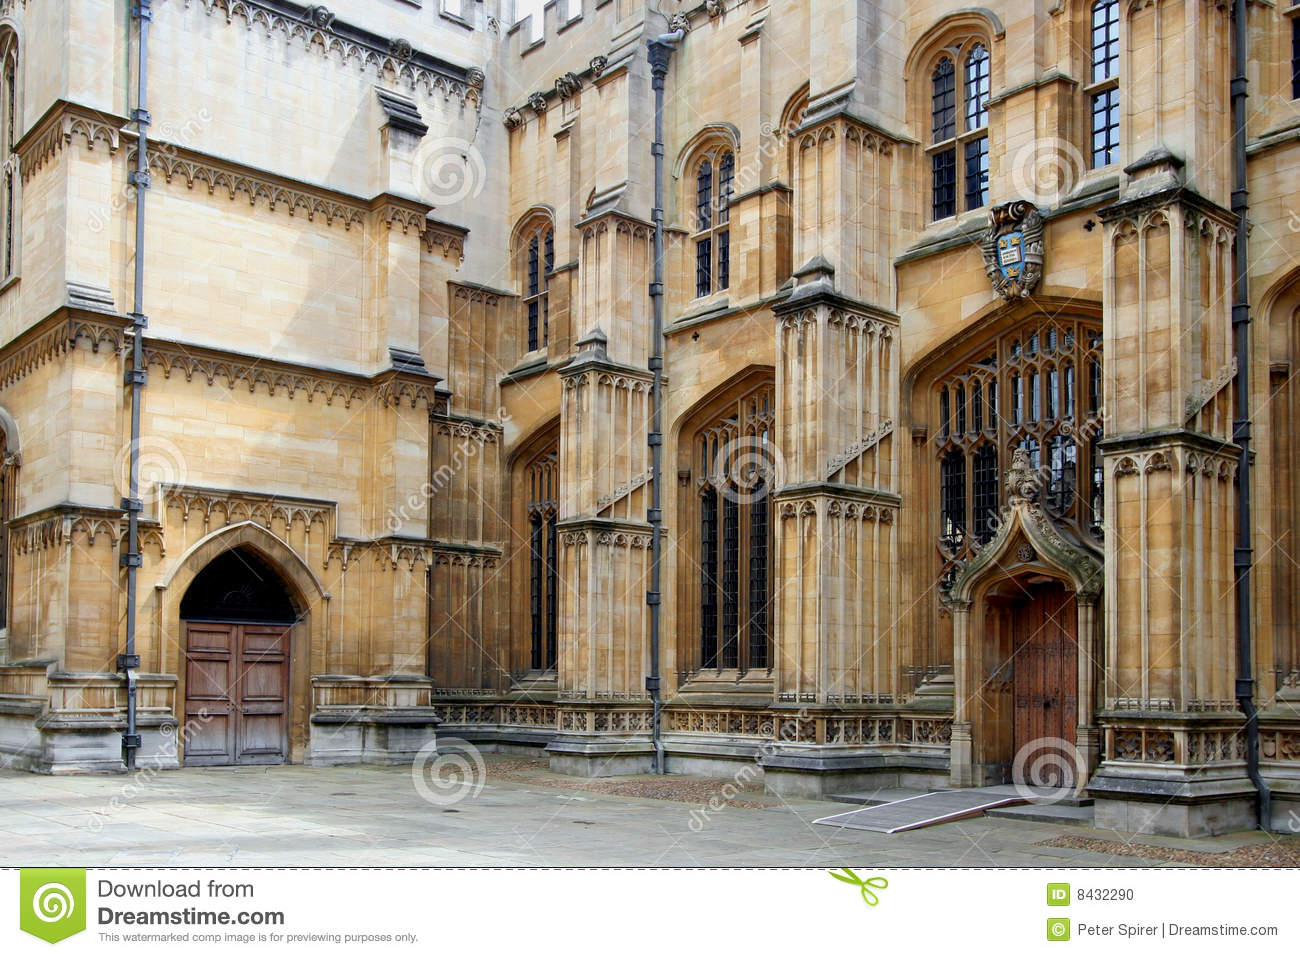 Oxford University, Bodleian library